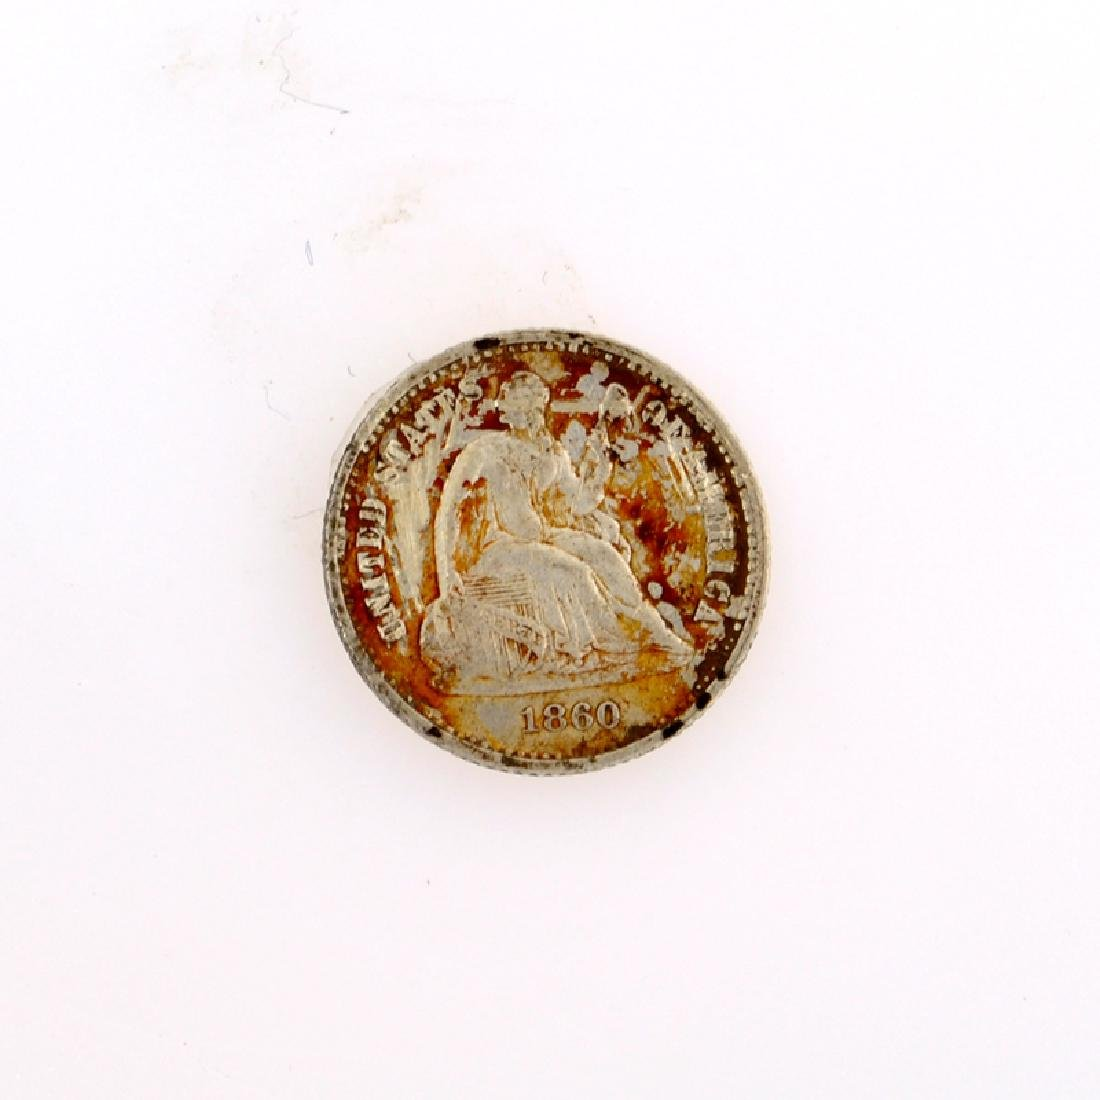 1860 Liberty Seated Half Dime Coin